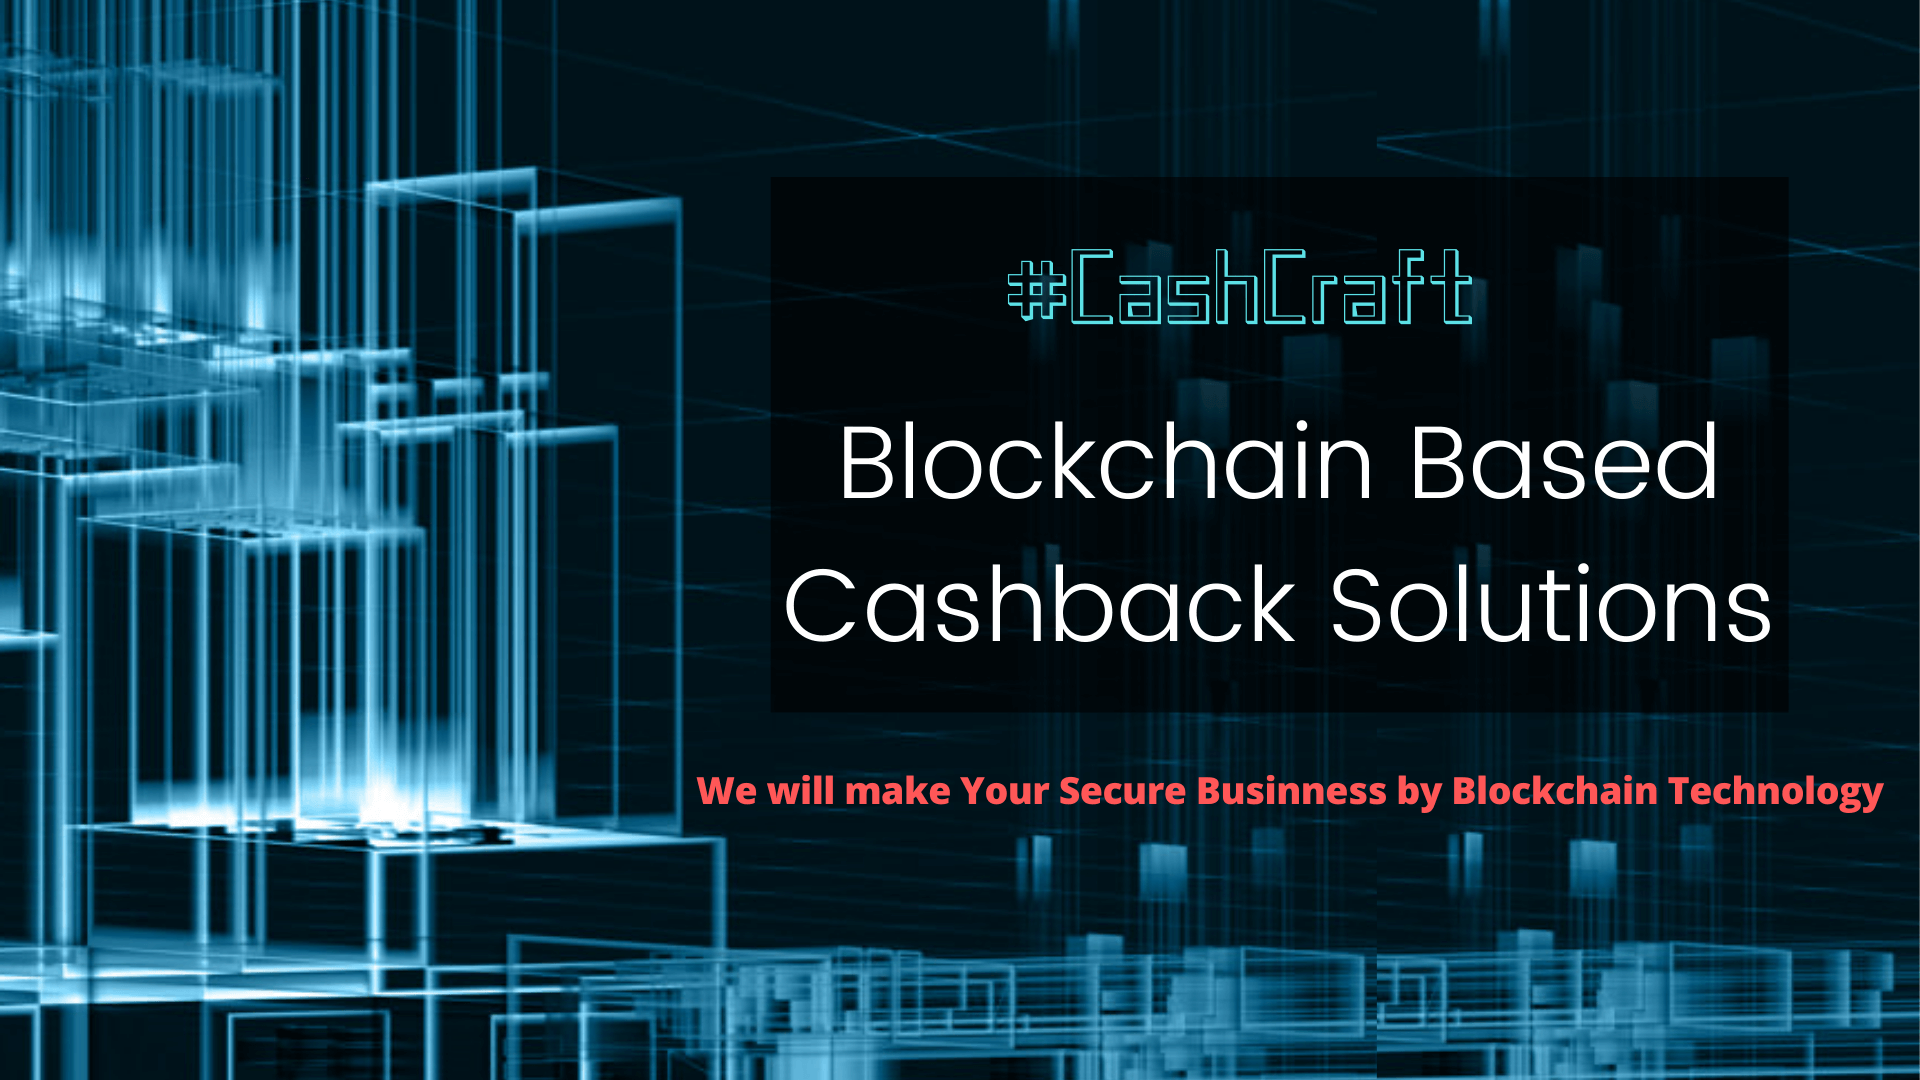 Blockchain Cashback Solutions: Develop your Cashback Website on Decentralized Network